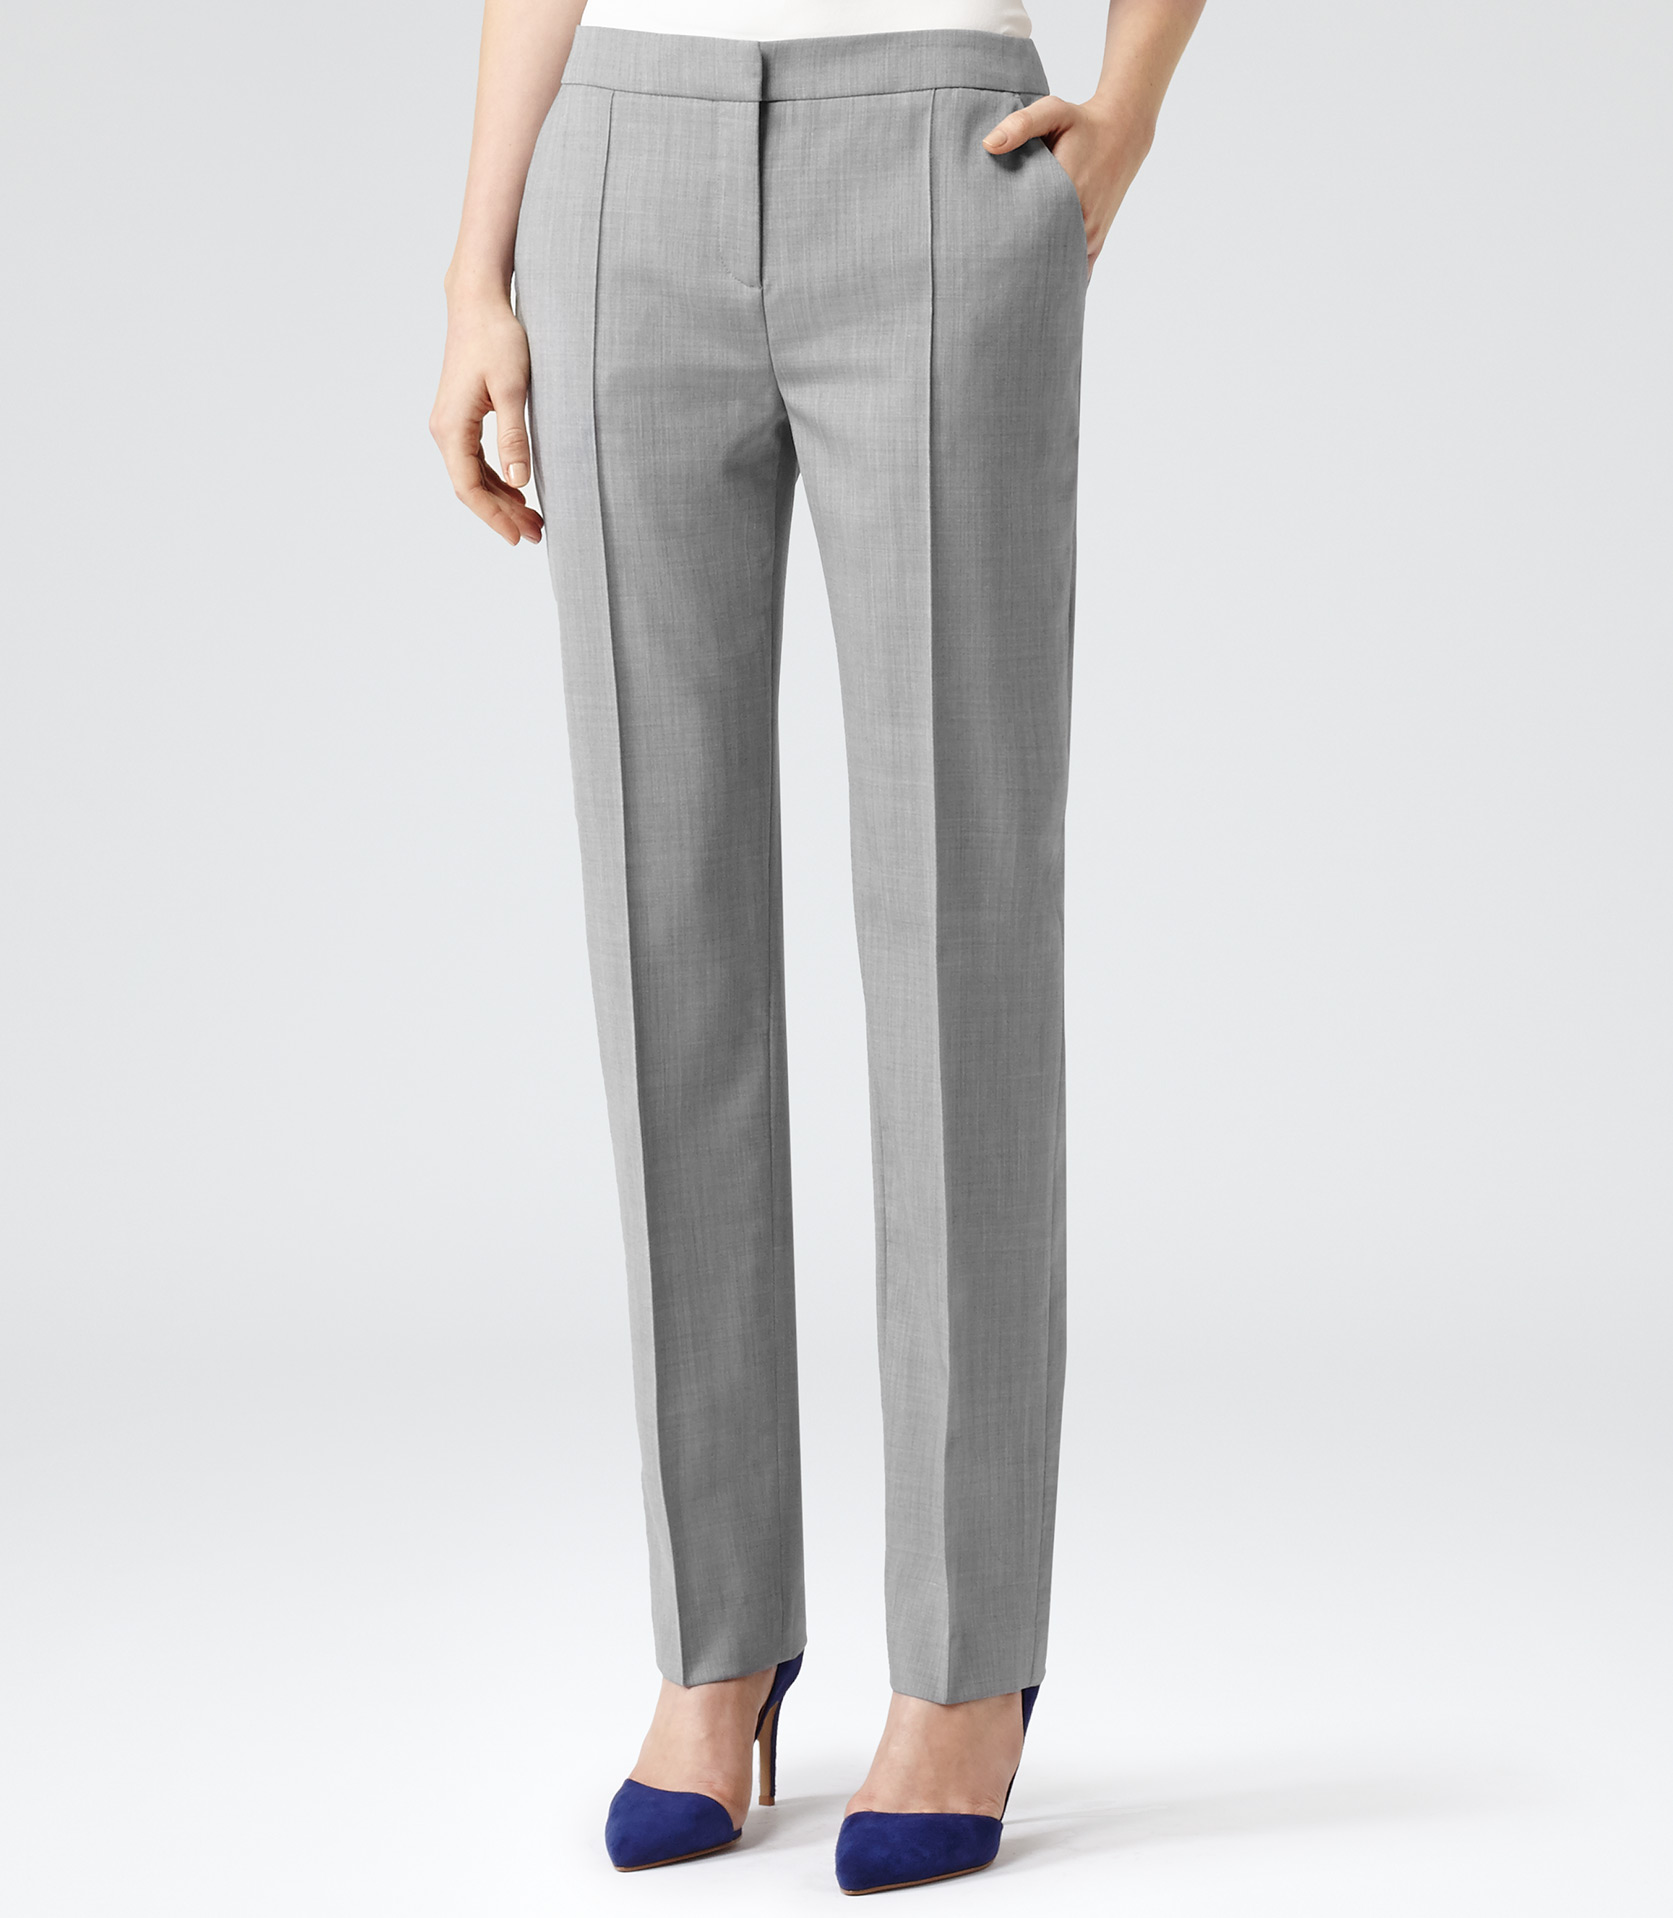 Elegant Grey Pants For Women  Pi Pants